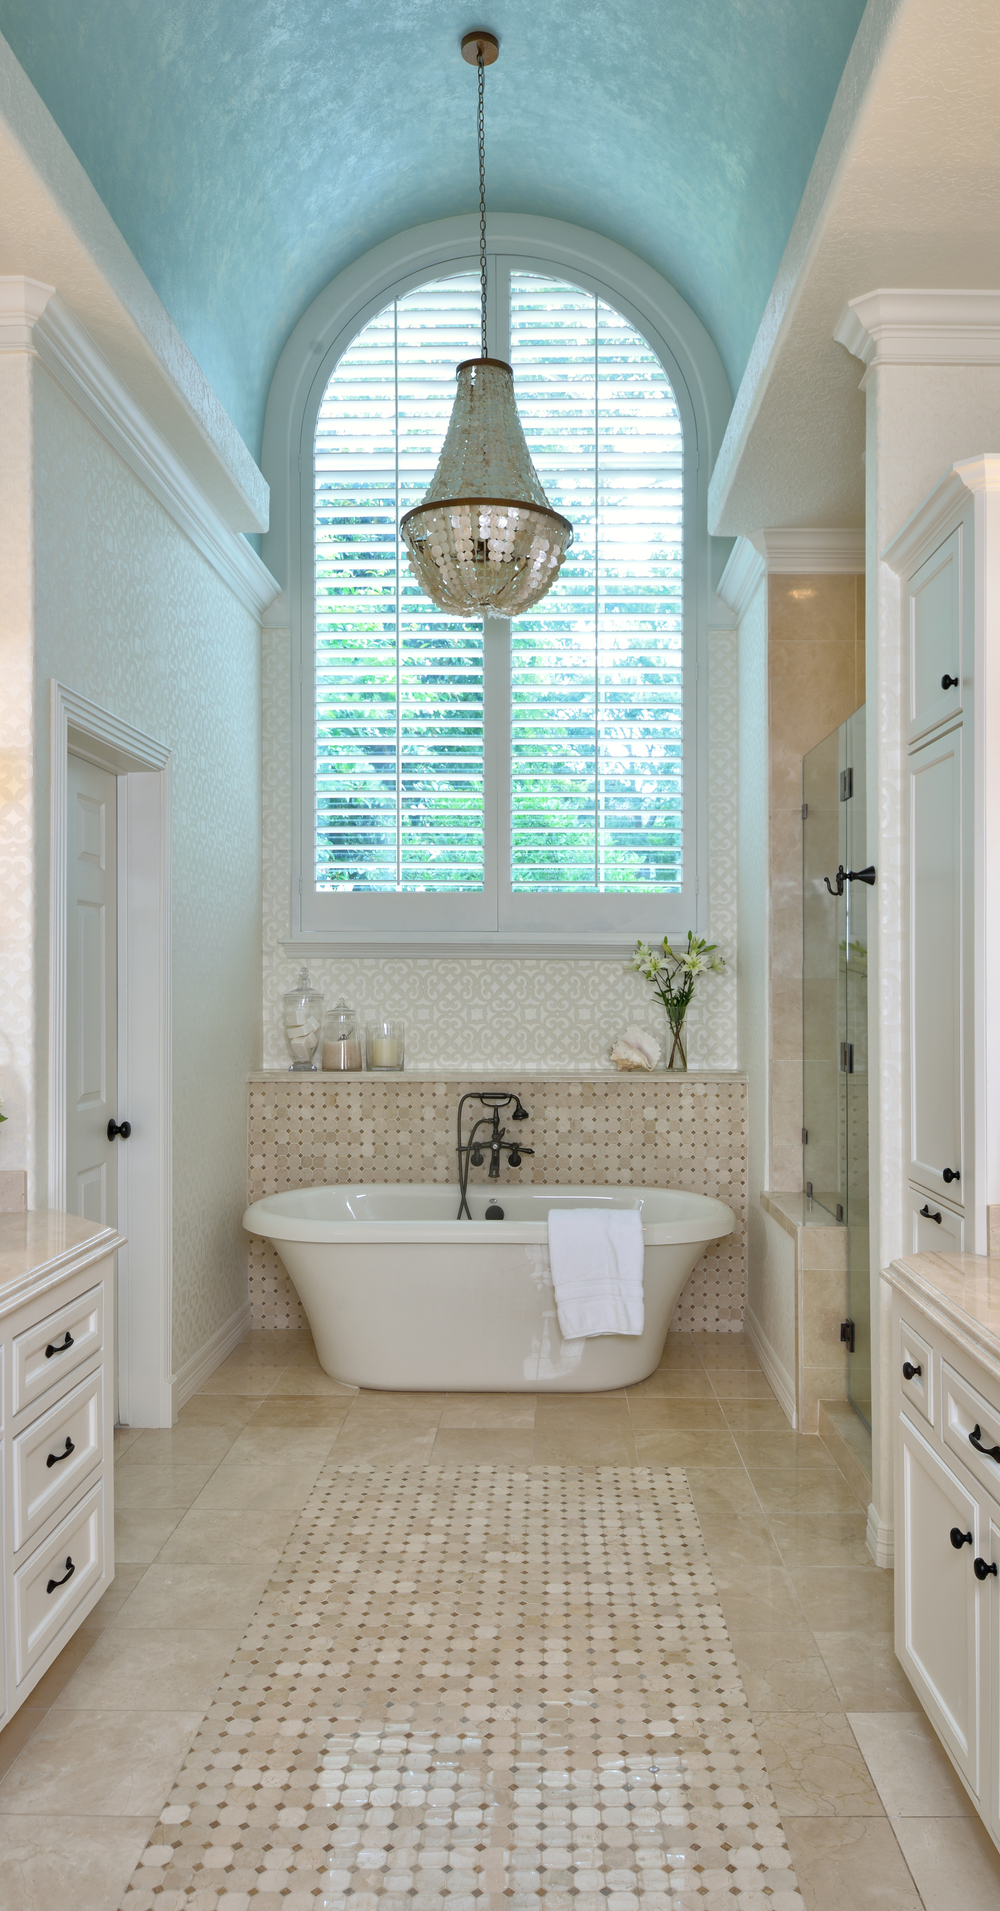 Top Bathroom Design Trends Guaranteed To Freshen Up Your Home - Texas bathroom decor for small bathroom ideas